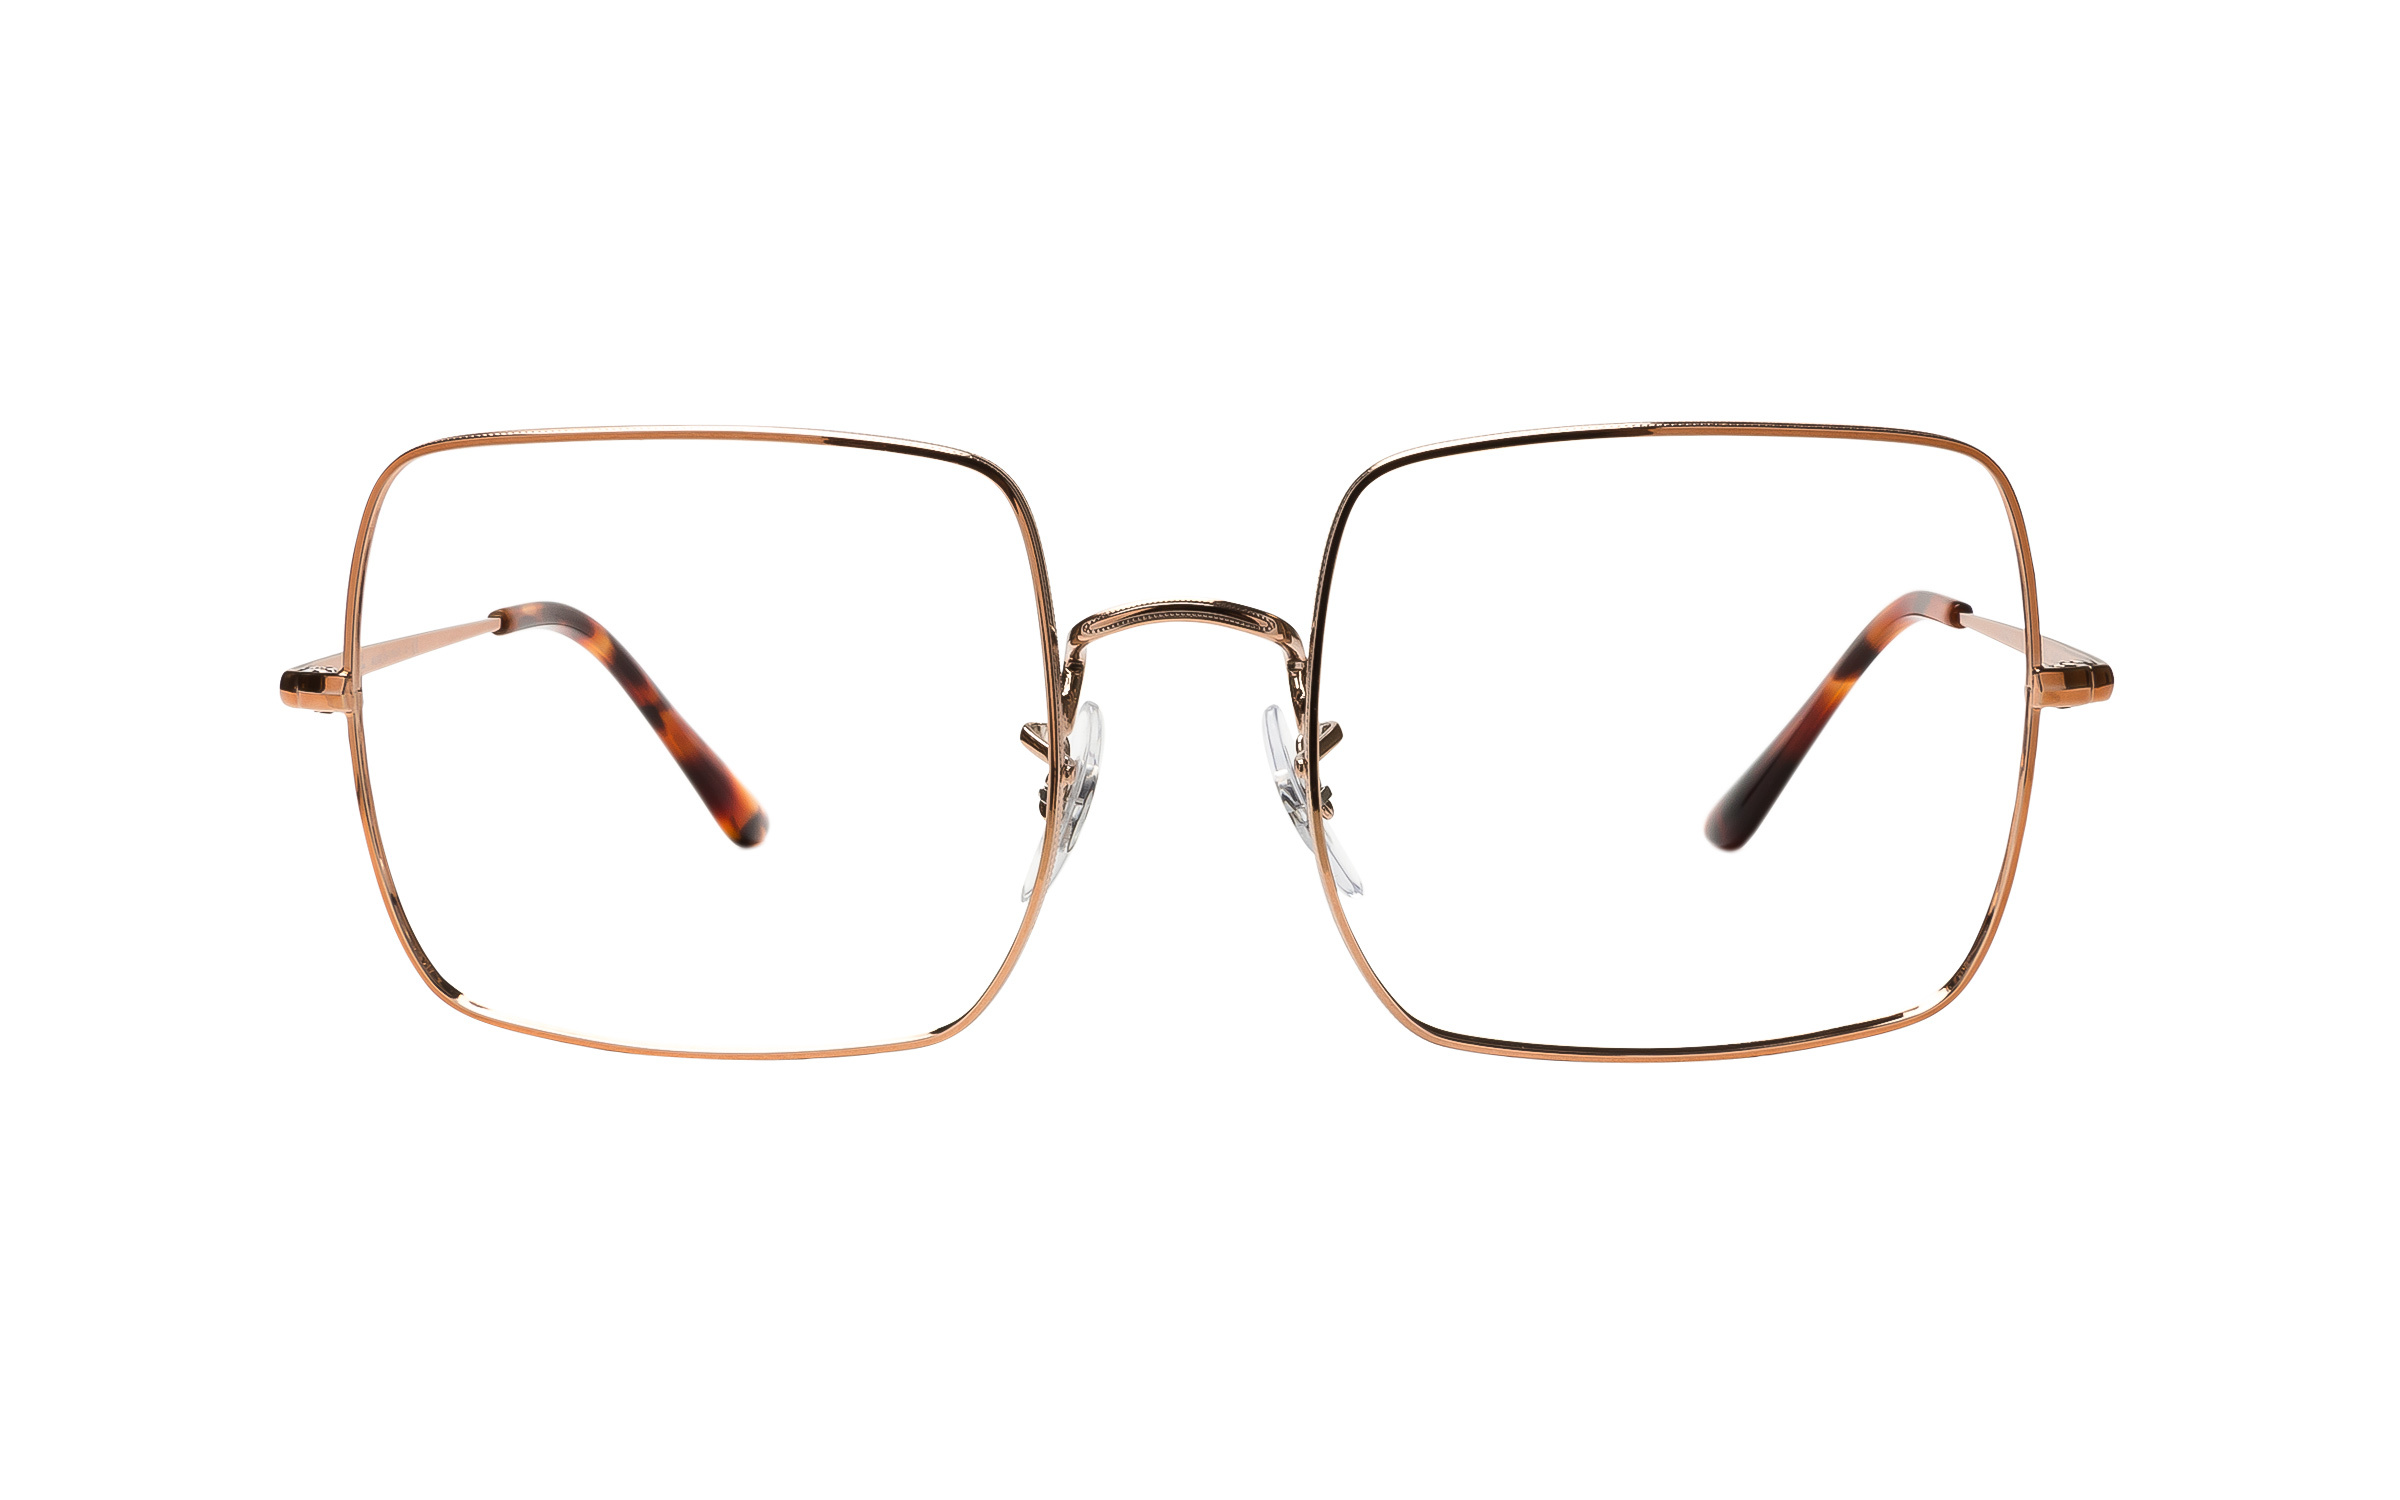 Luxottica Ray-Ban Square 1971 RX1971V 2943 (54) Eyeglasses and Frame in Copper Gold/Brown | Plastic/Metal - Online Coastal